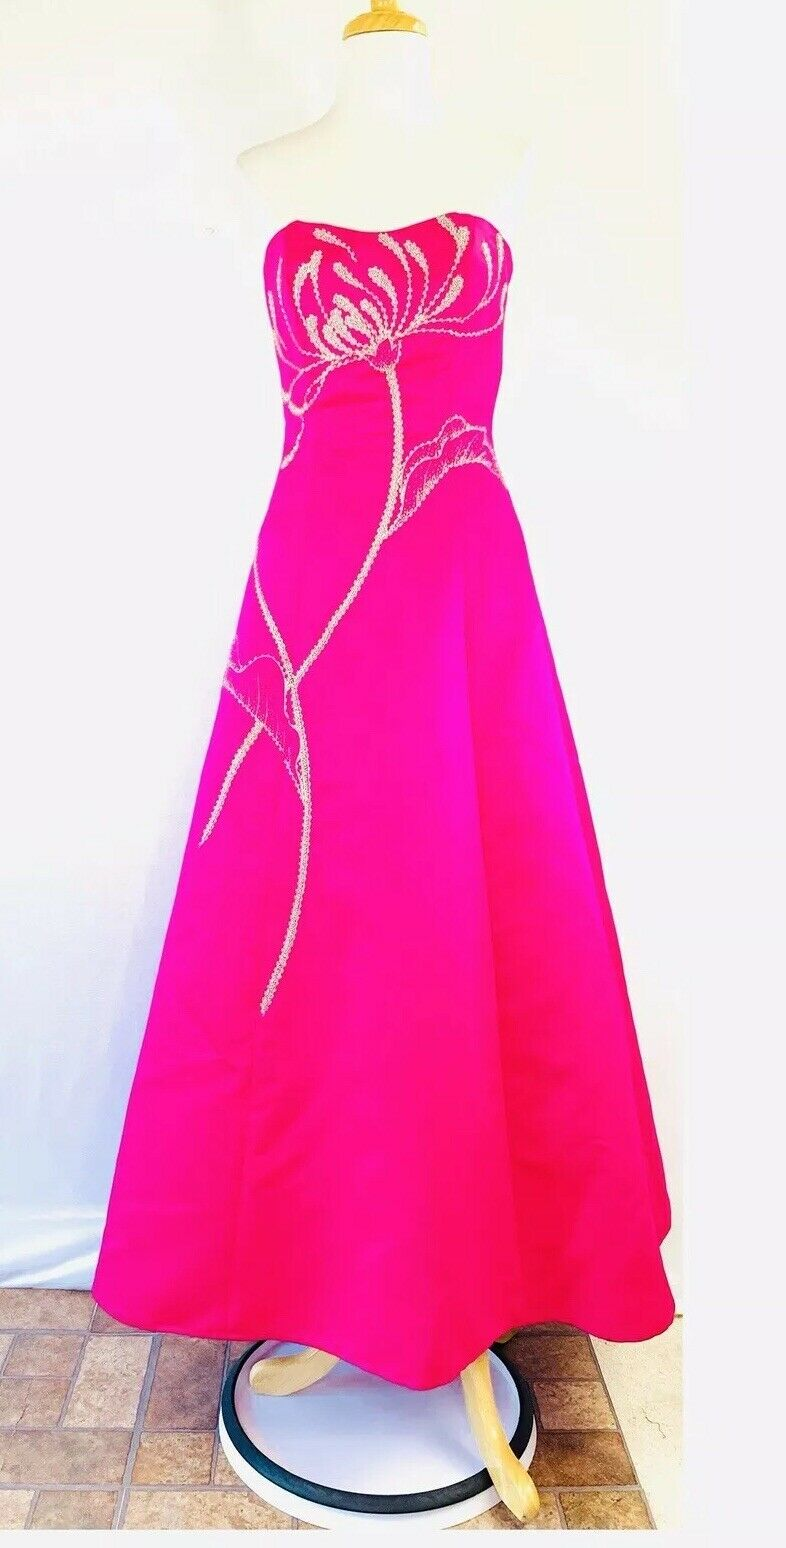 NWOT  Sean Collection Taffeta Ball Beaded Strapless Gown Größe Small Fuchsia